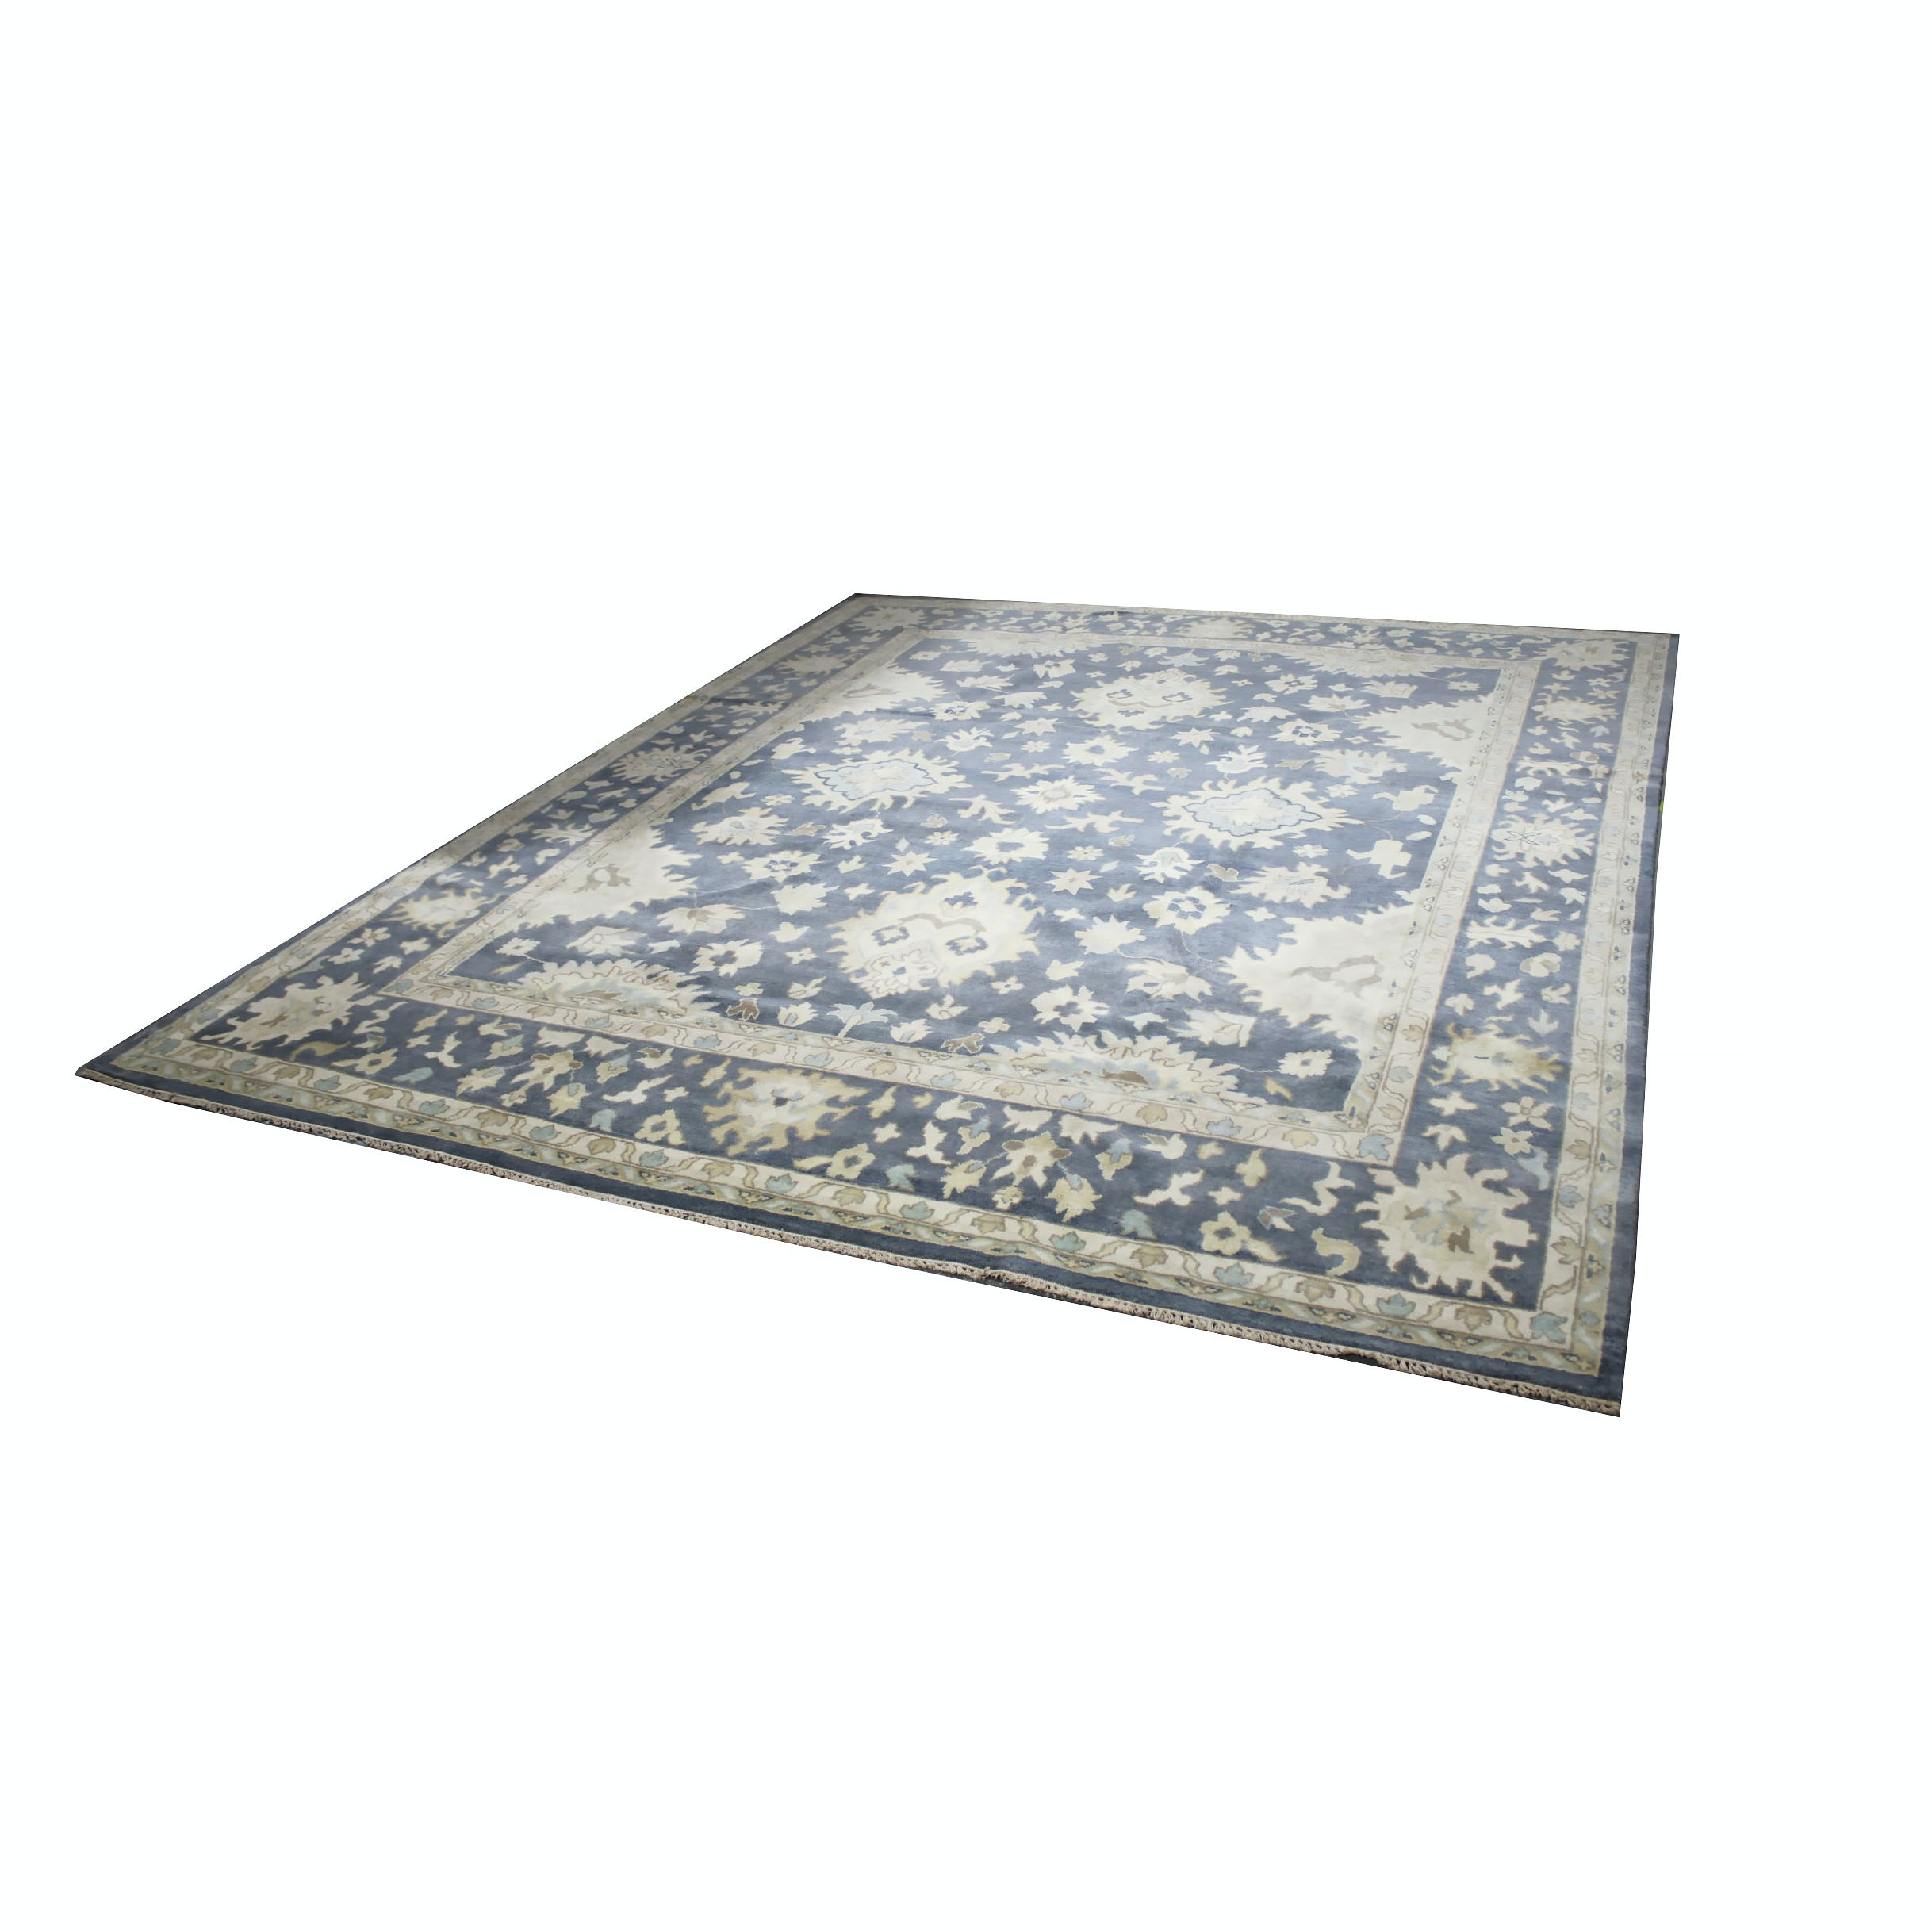 Large Hand-Knotted Indo-Oushak Area Rug